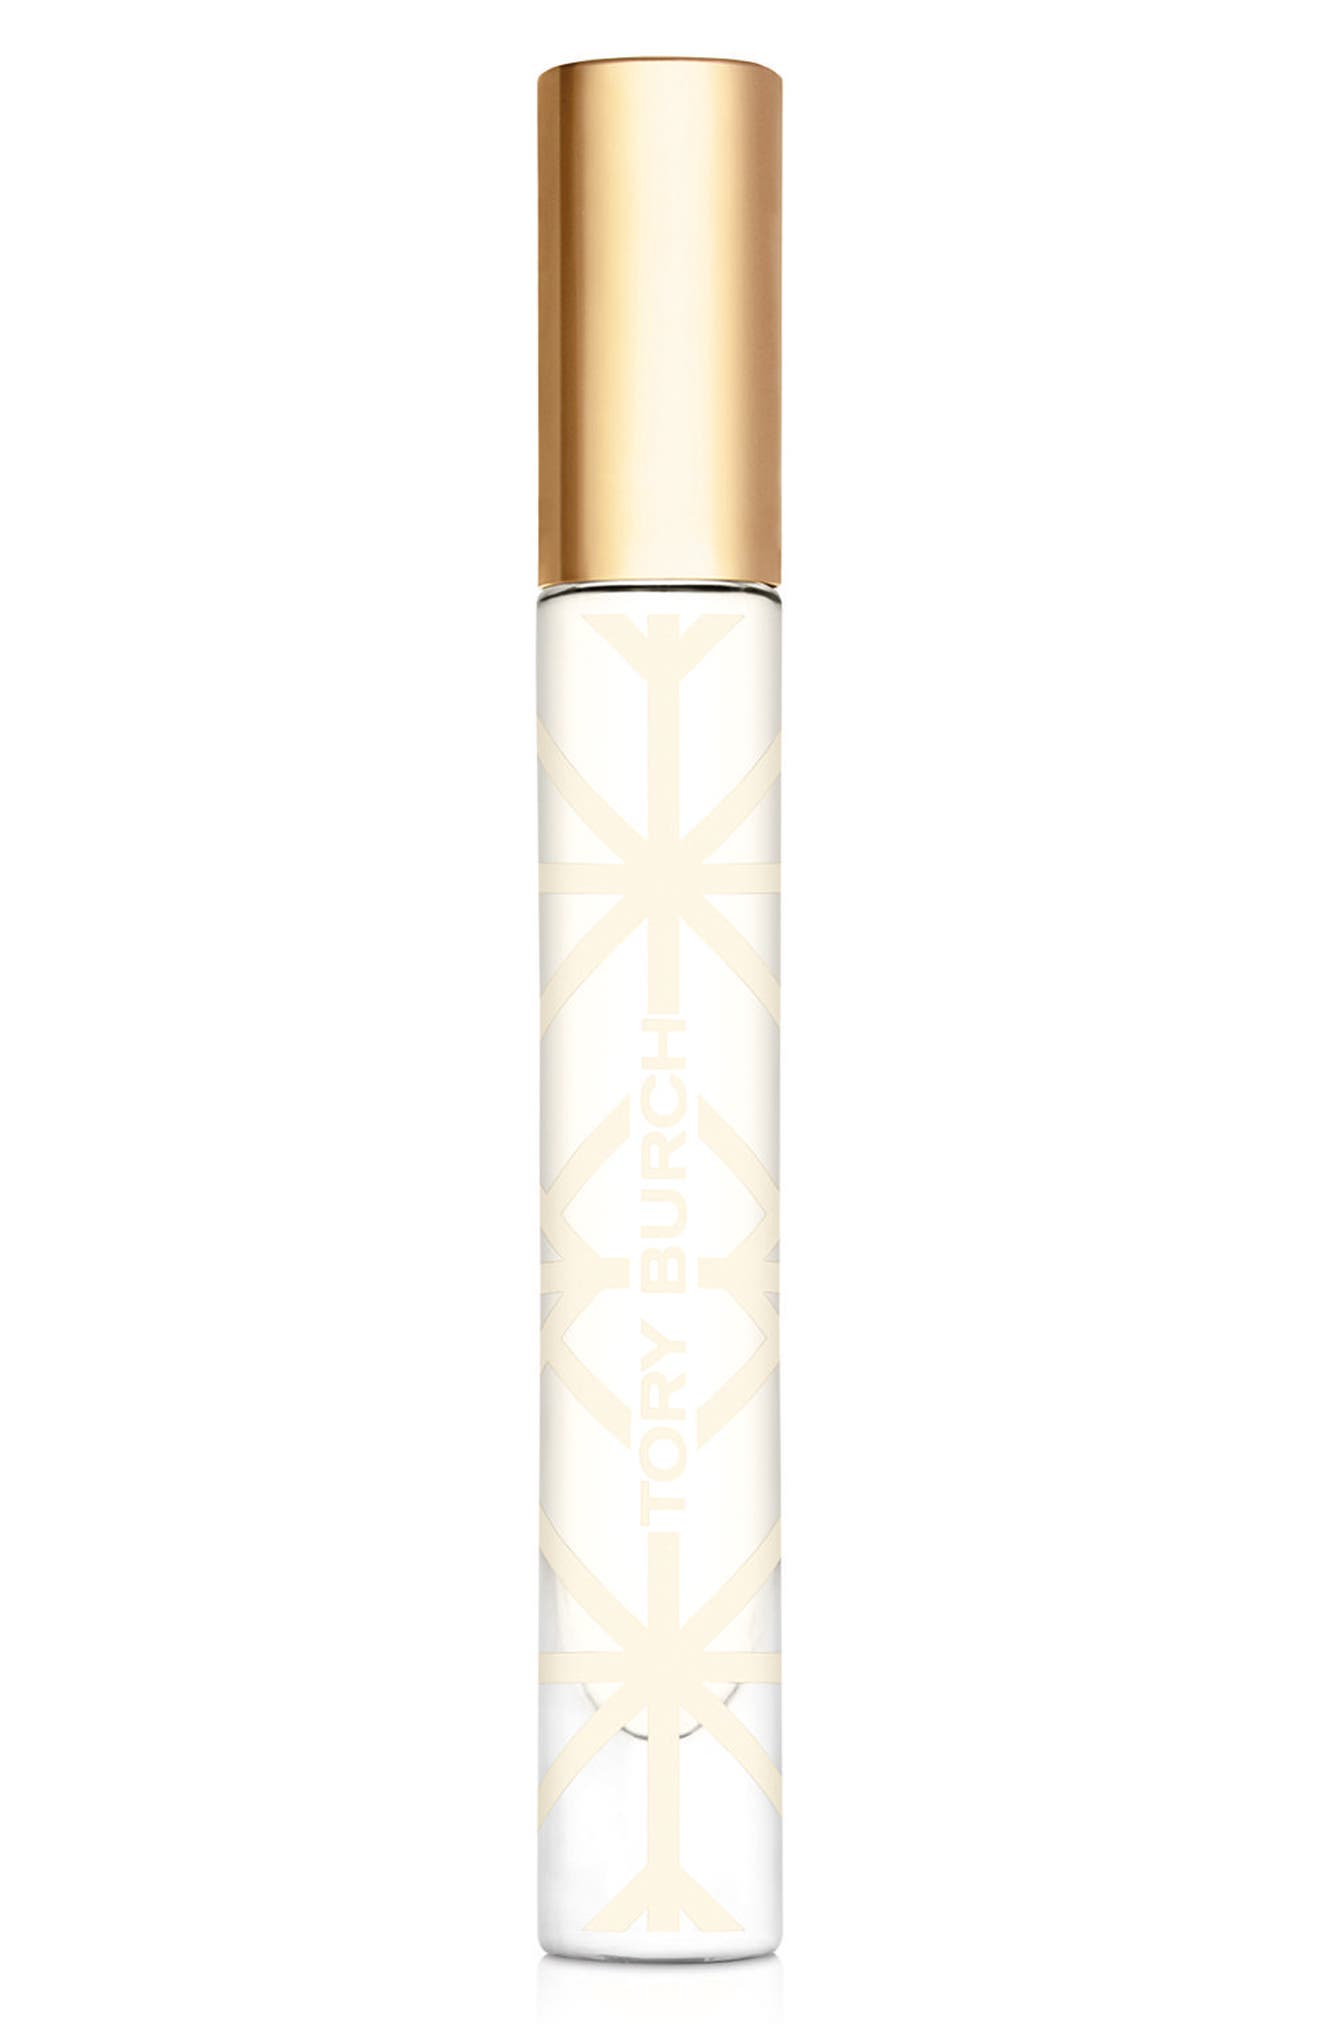 Just Like Heaven Extrait de Parfum Rollerball,                             Main thumbnail 1, color,                             NO COLOR